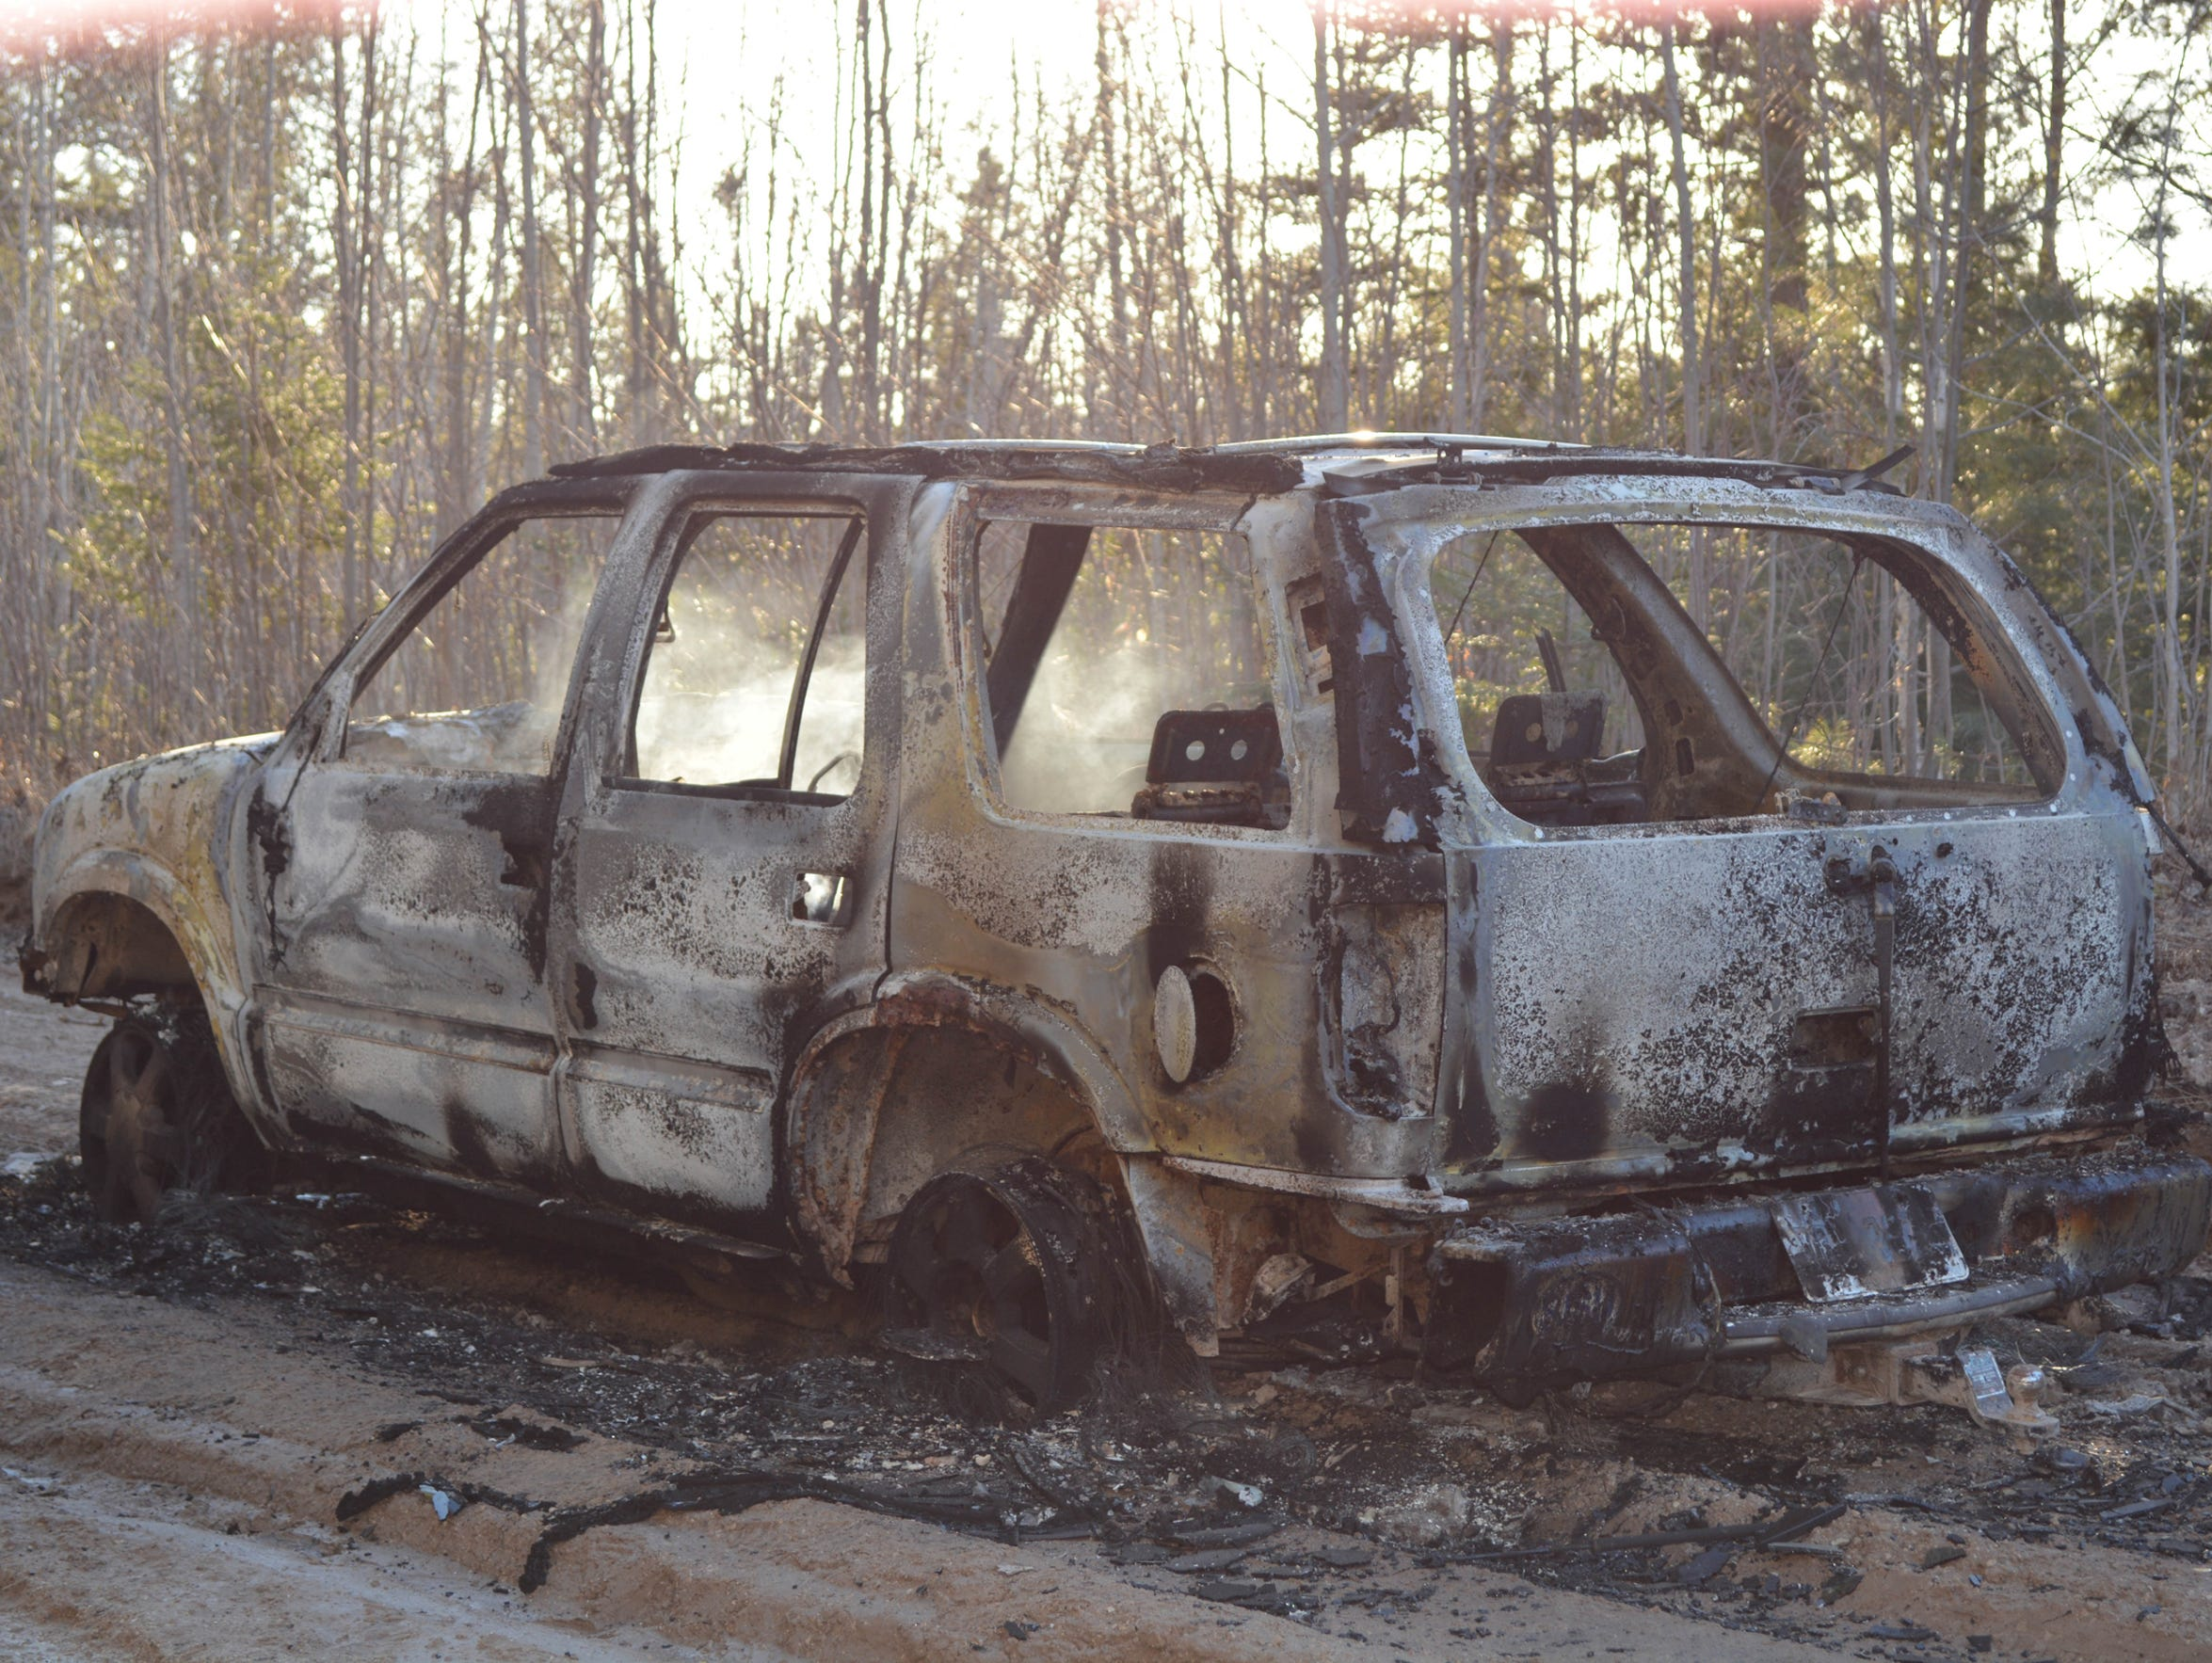 The burned Bravada containing the bodies of tripple